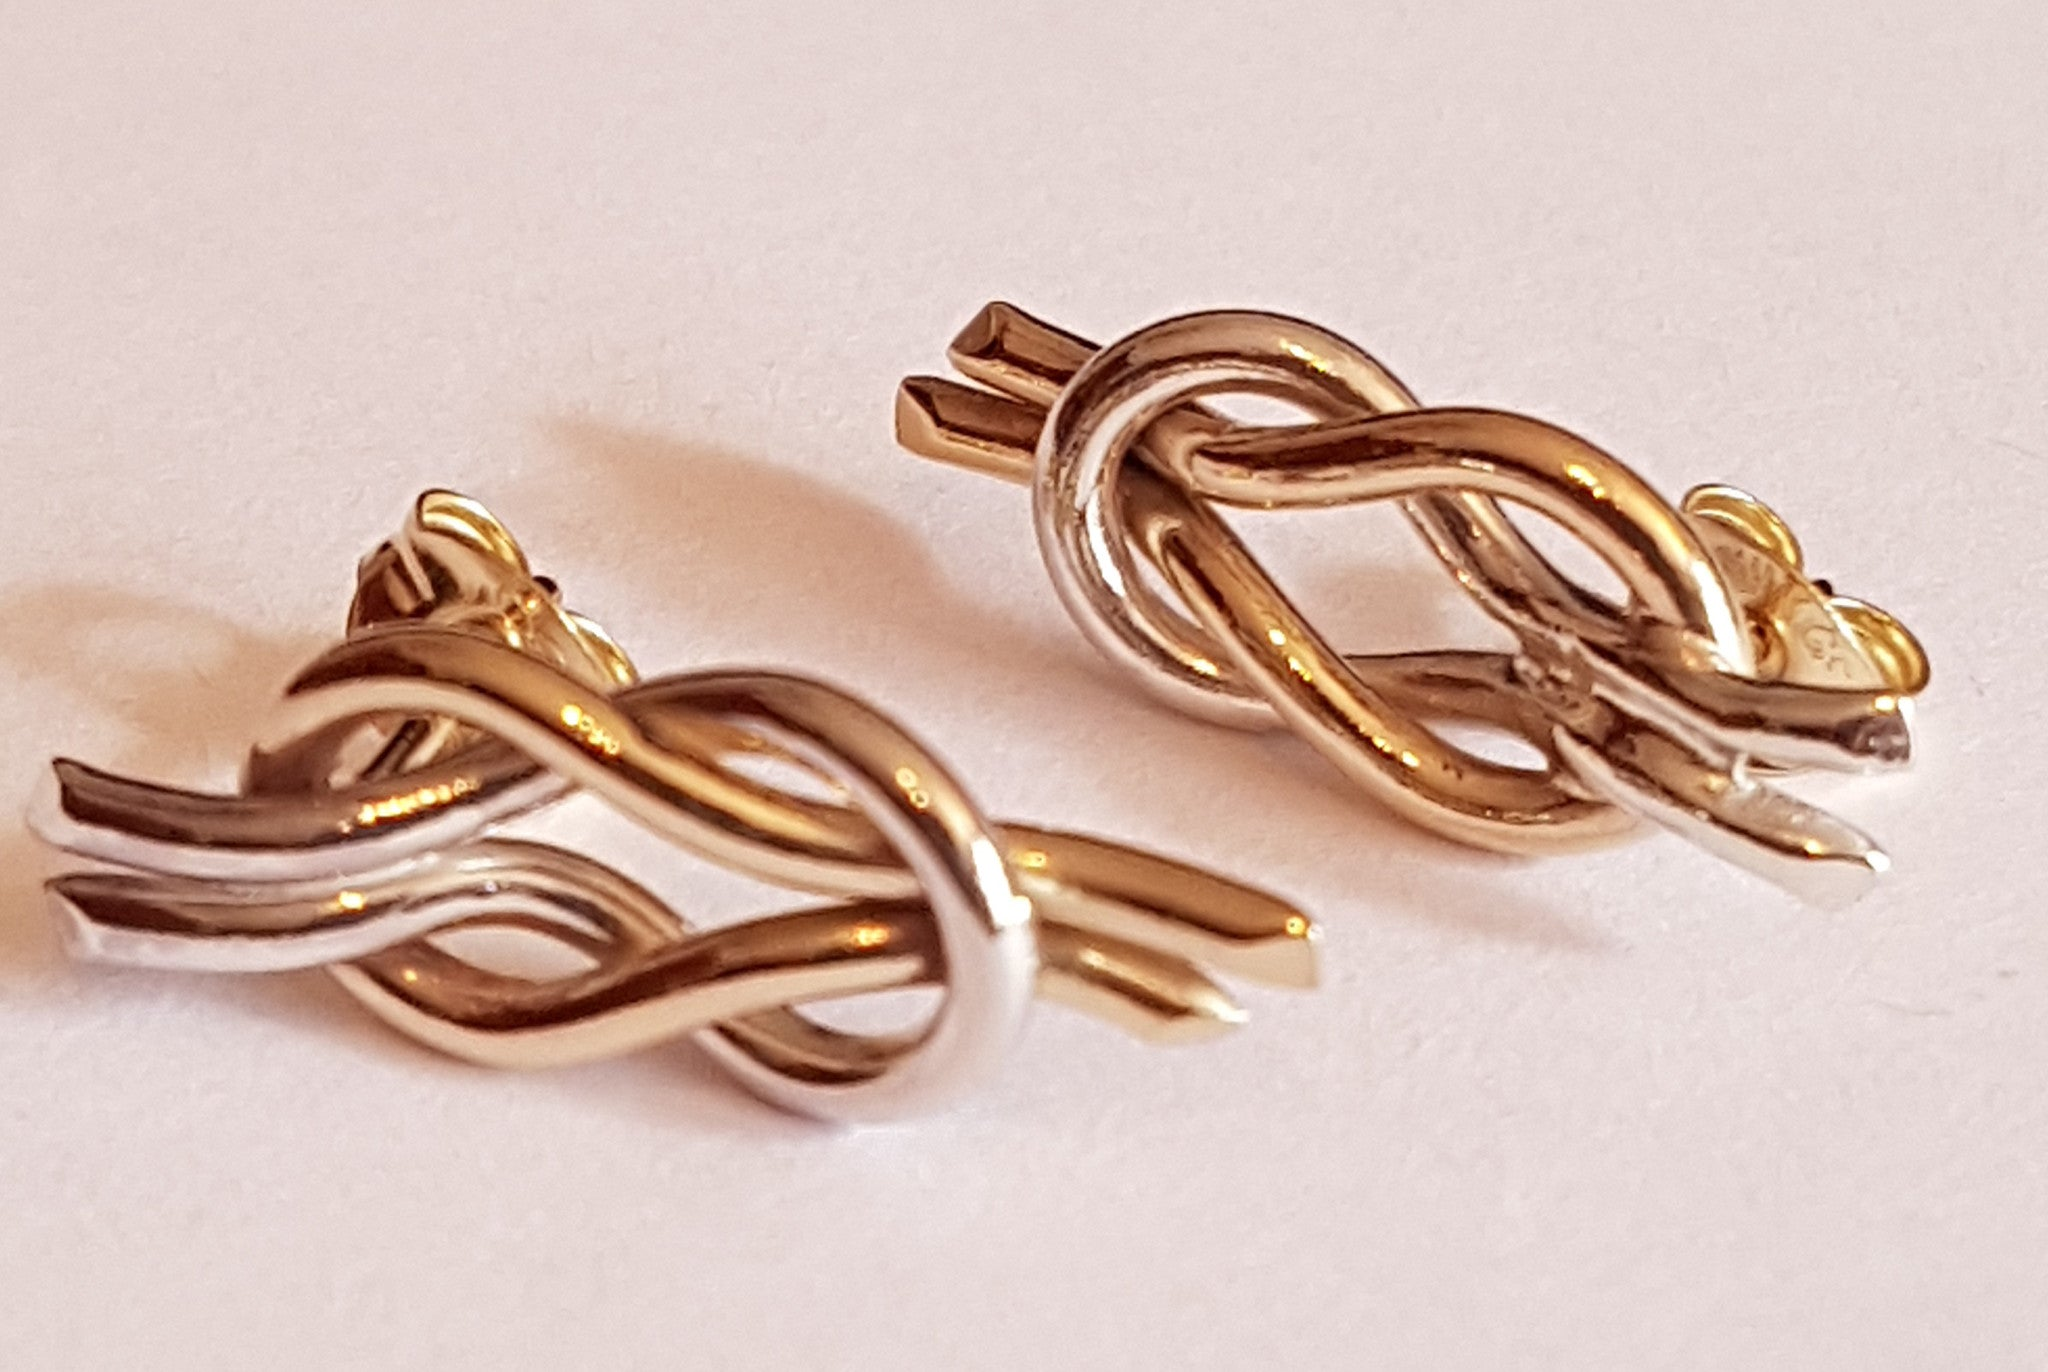 Gold and Silver Reef Knot Stud Earrings